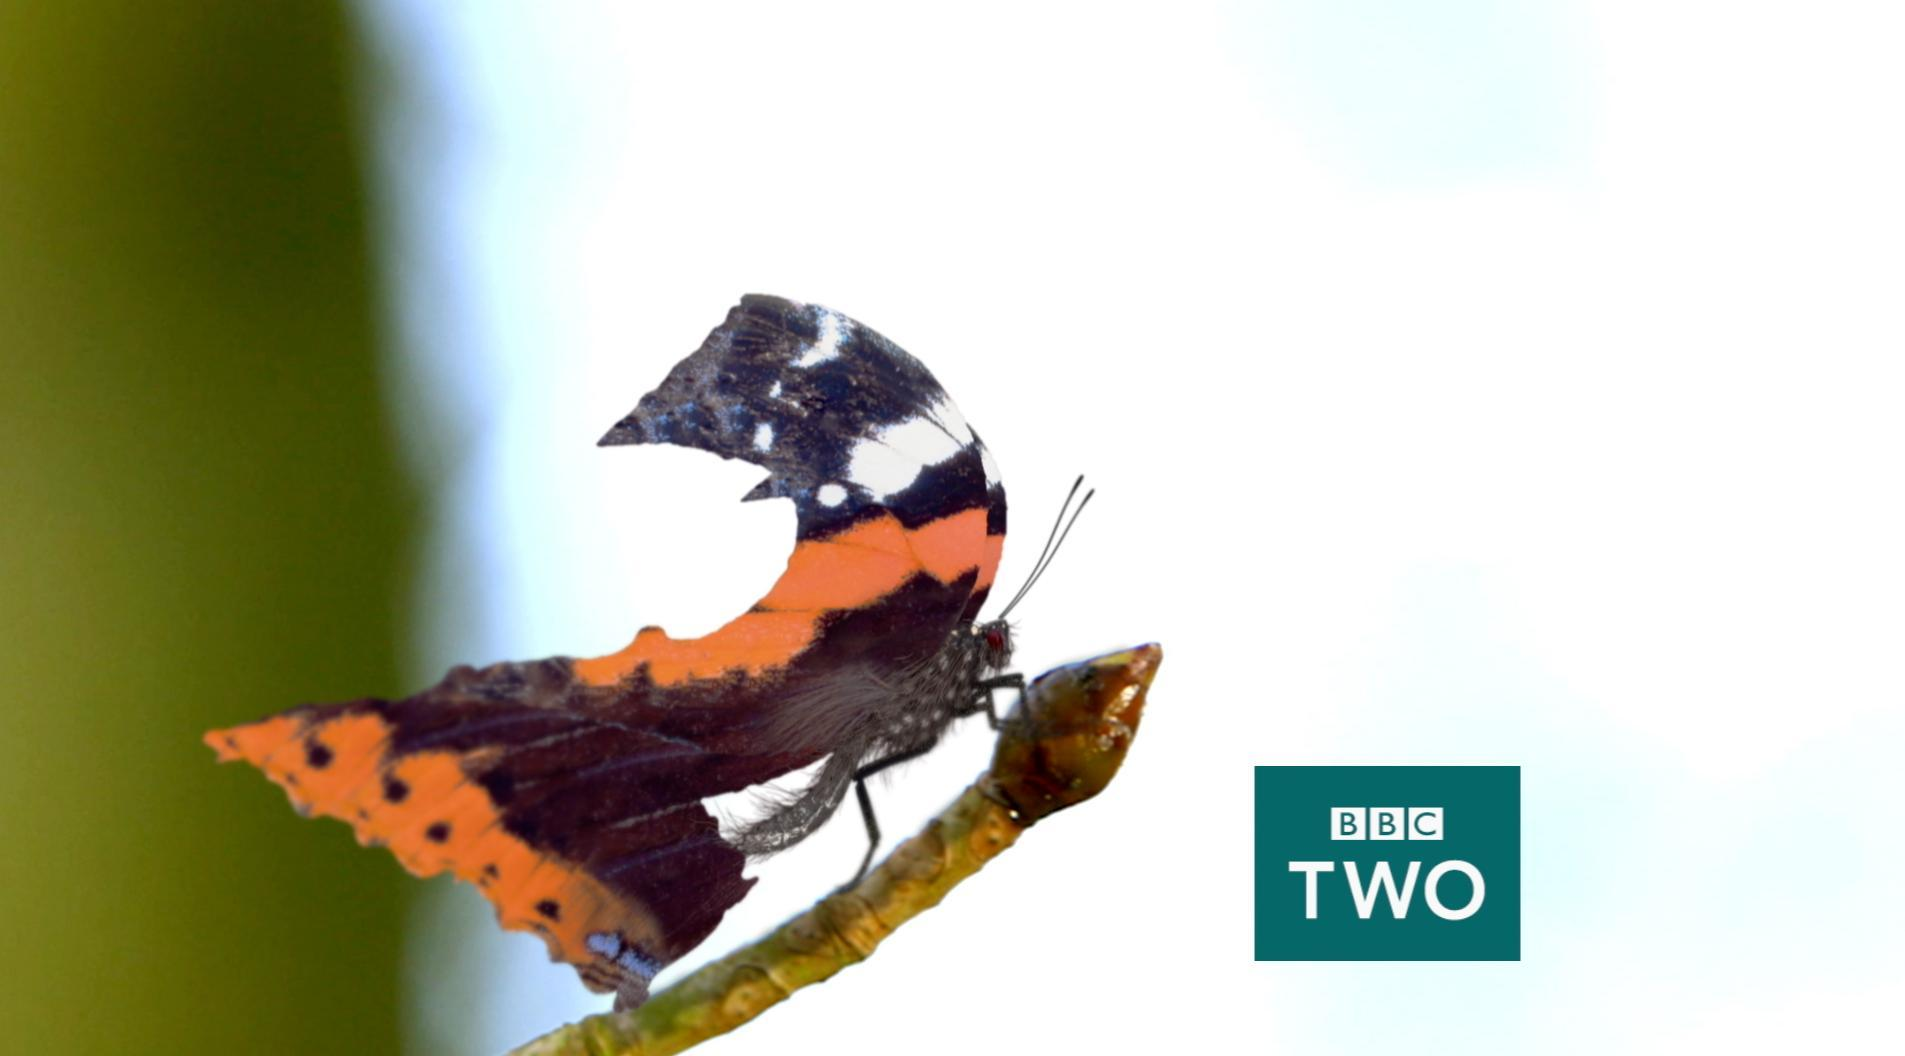 BBC TWO: Branding With Character